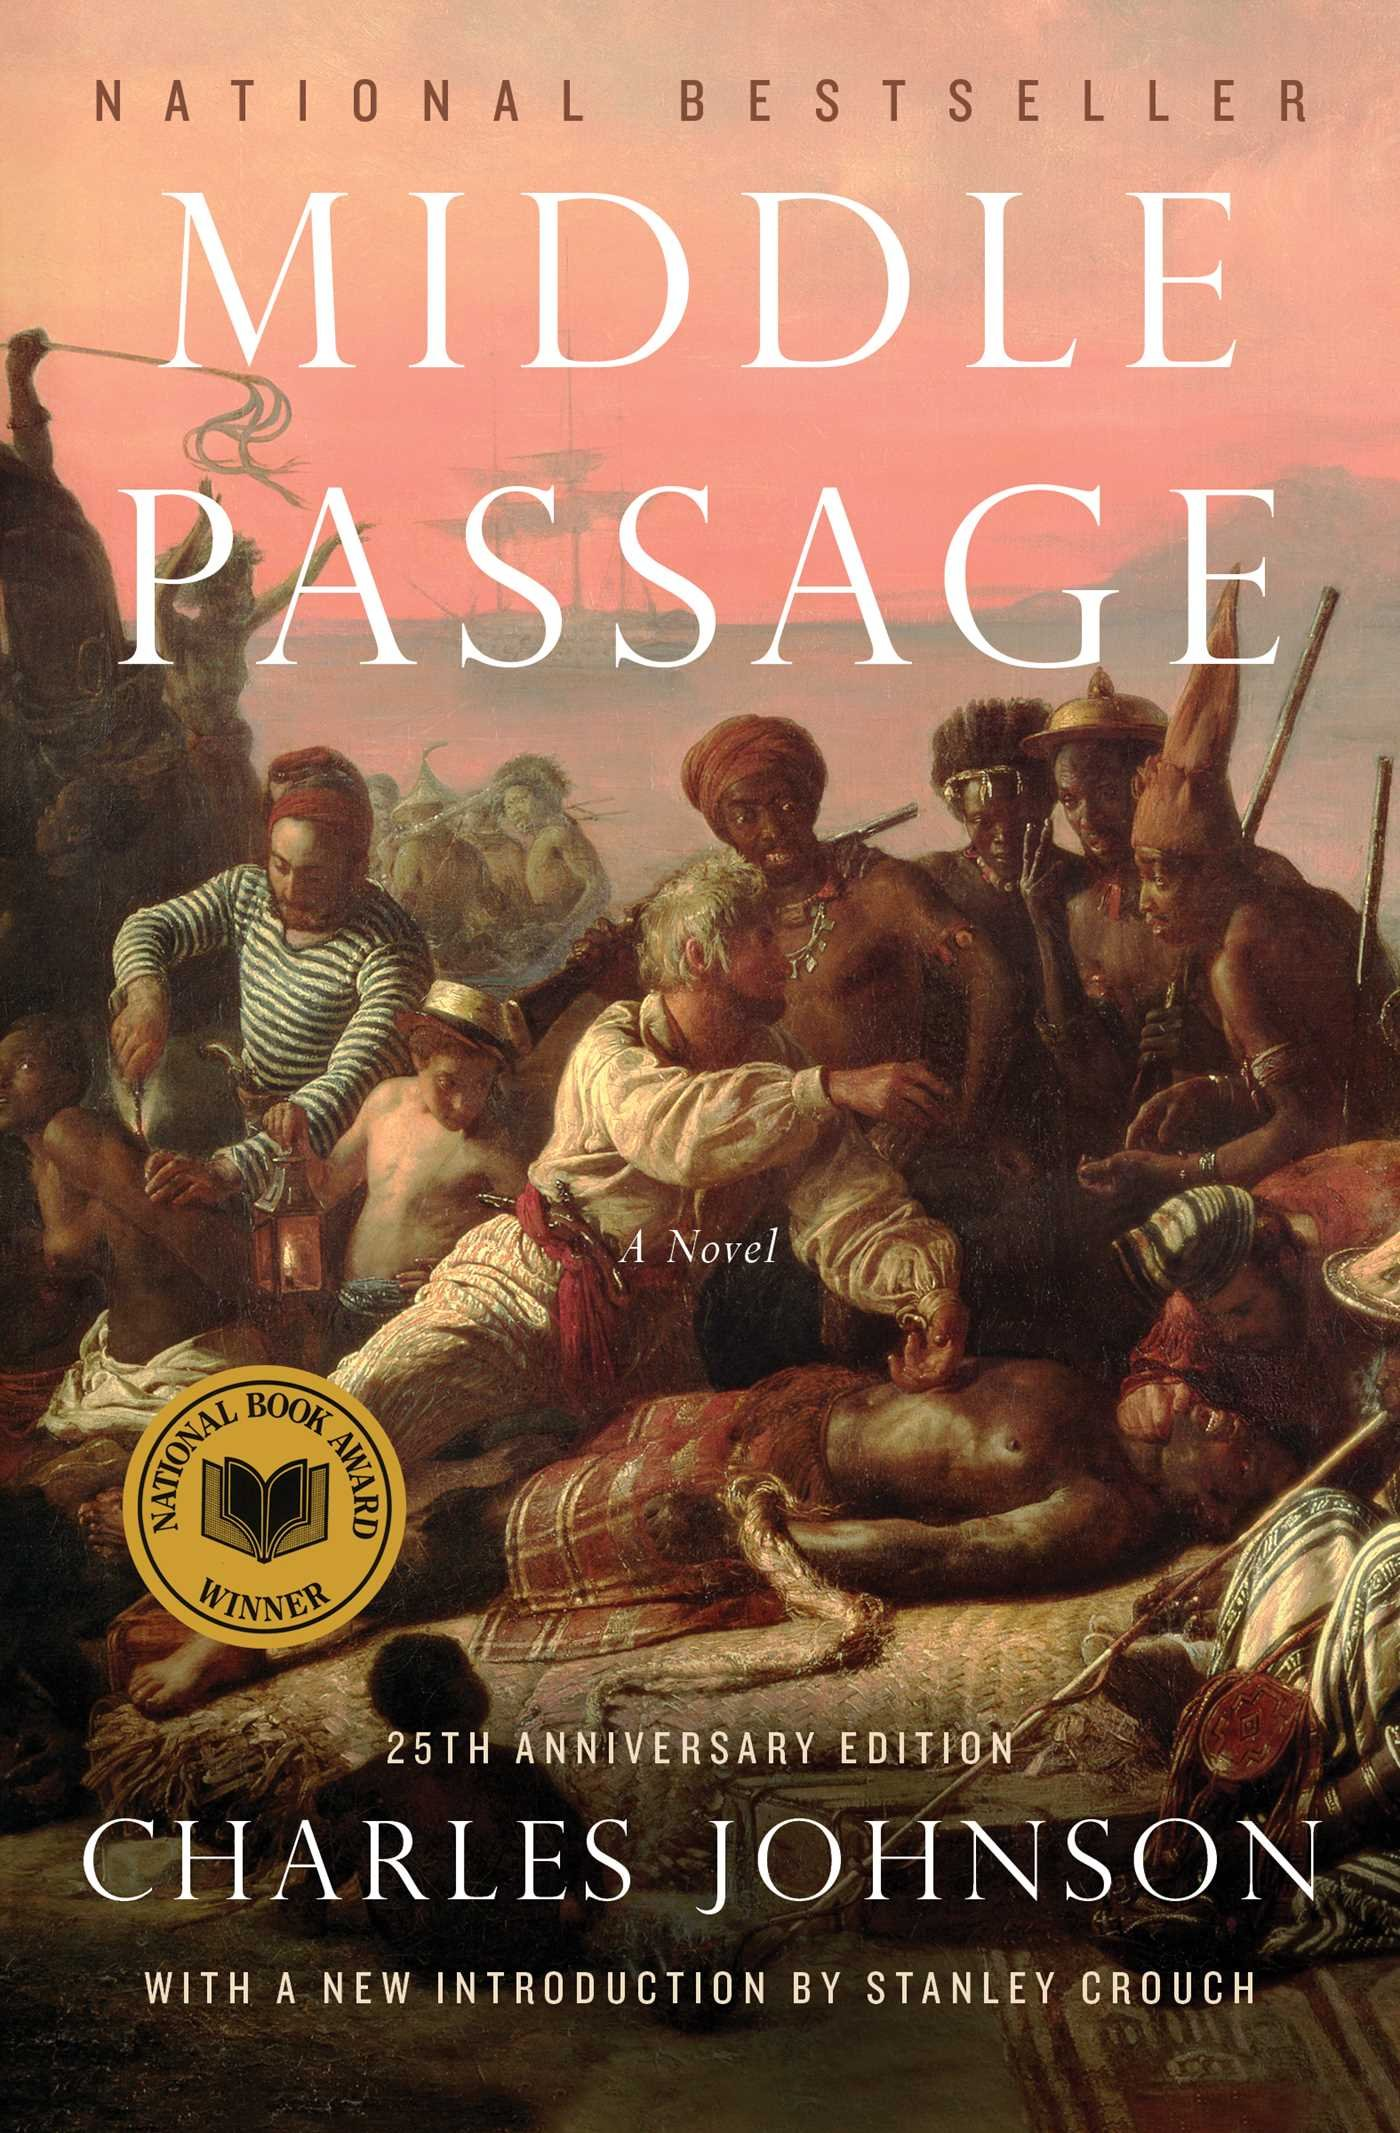 Is there a correct way to interpret a novel/passage/book?